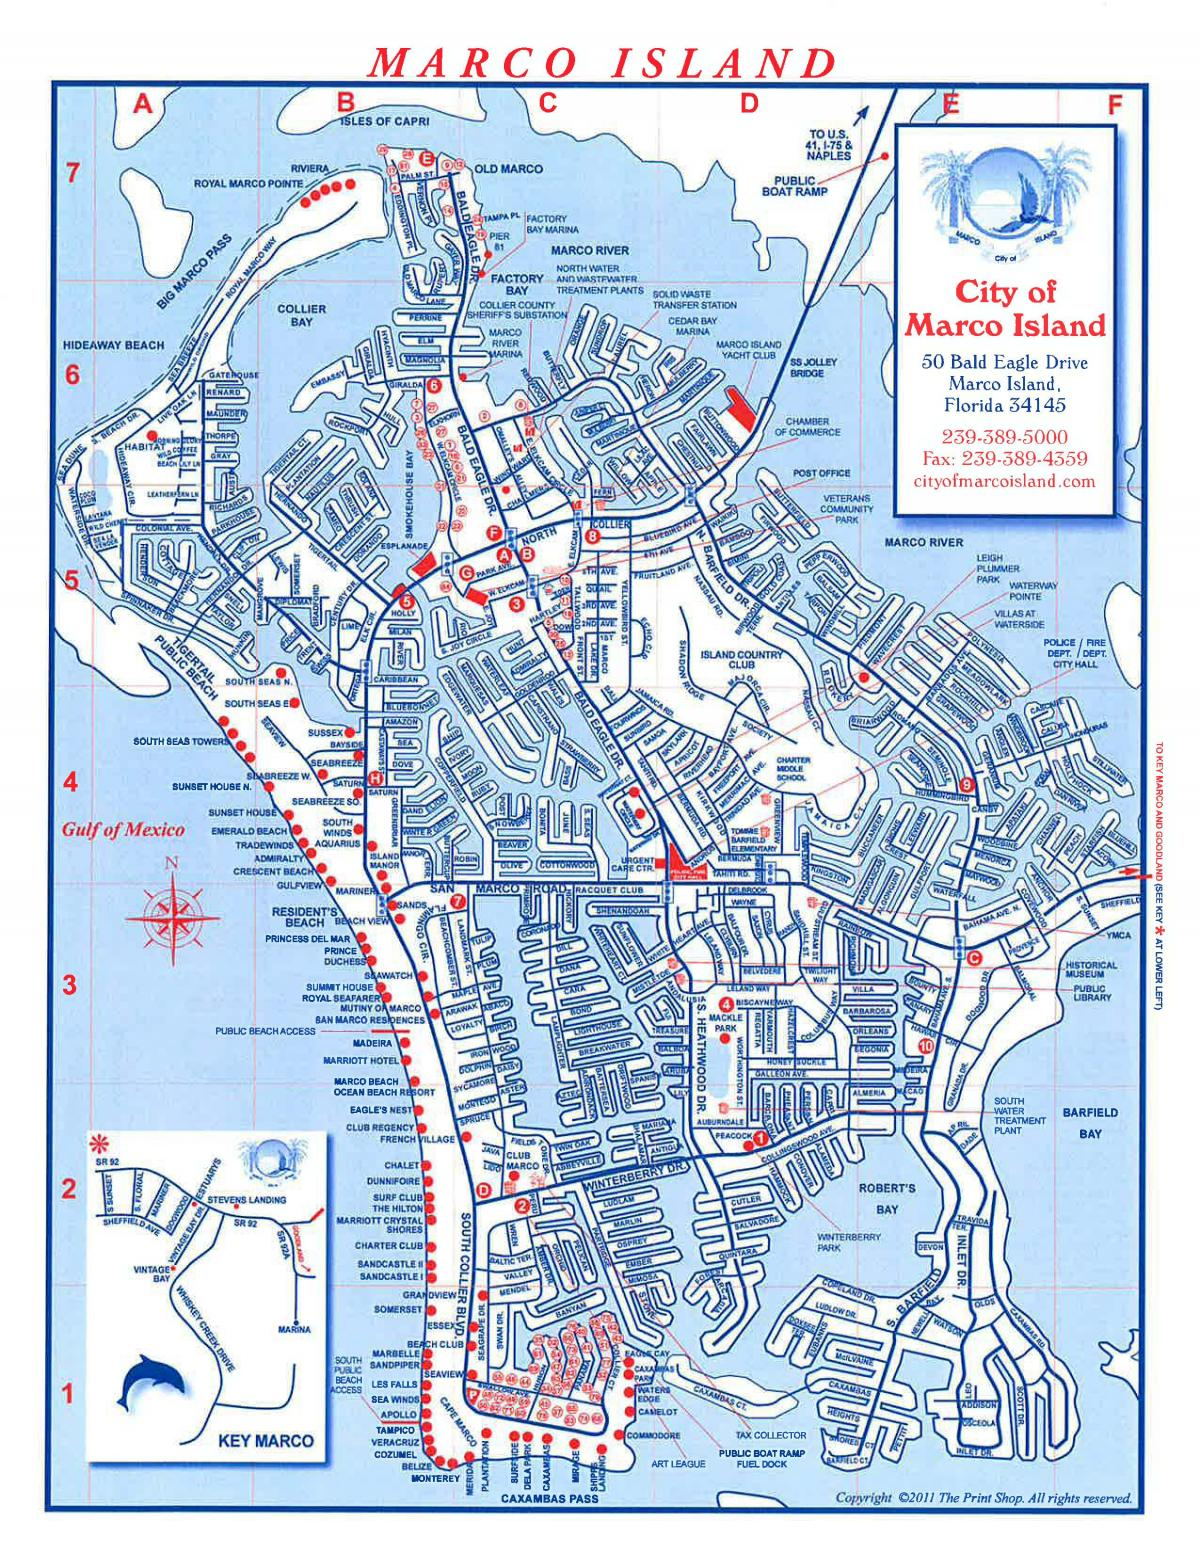 Marco Island Florida Map City of Marco Island MAP | City of Marco Island Florida